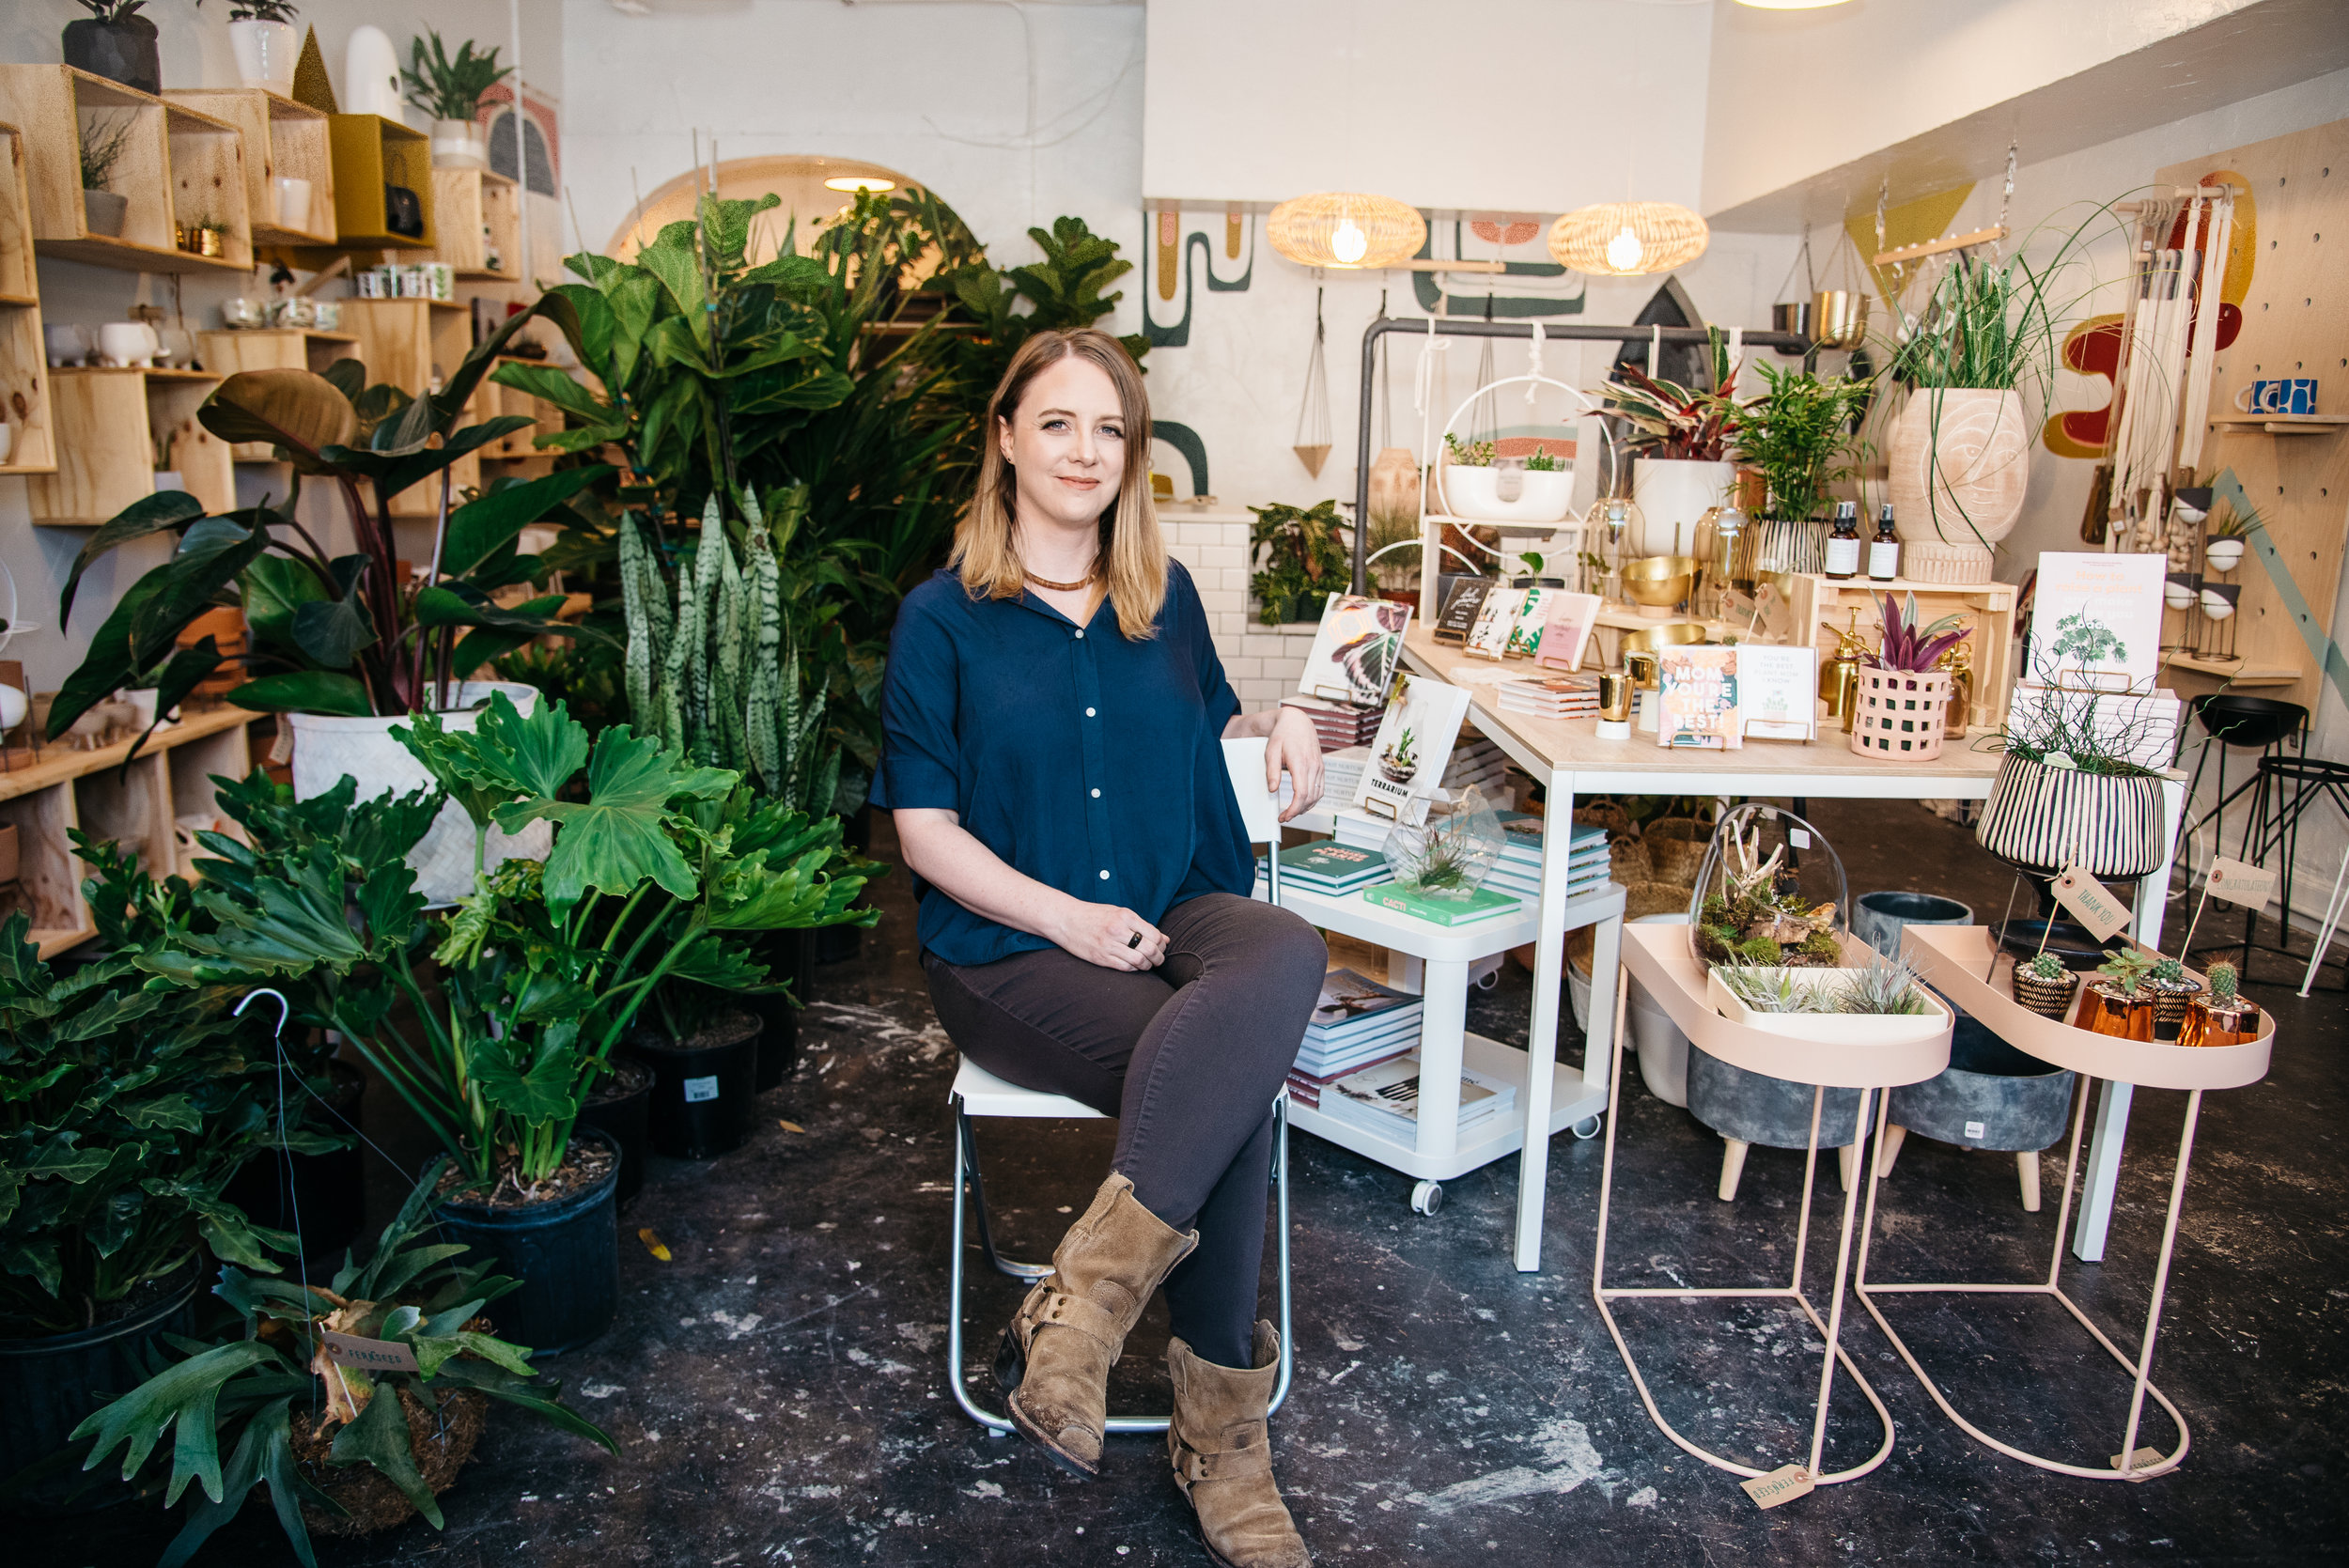 Meet Katherine - Owner of a new plant shop in Proctor neighborhood of Tacoma.